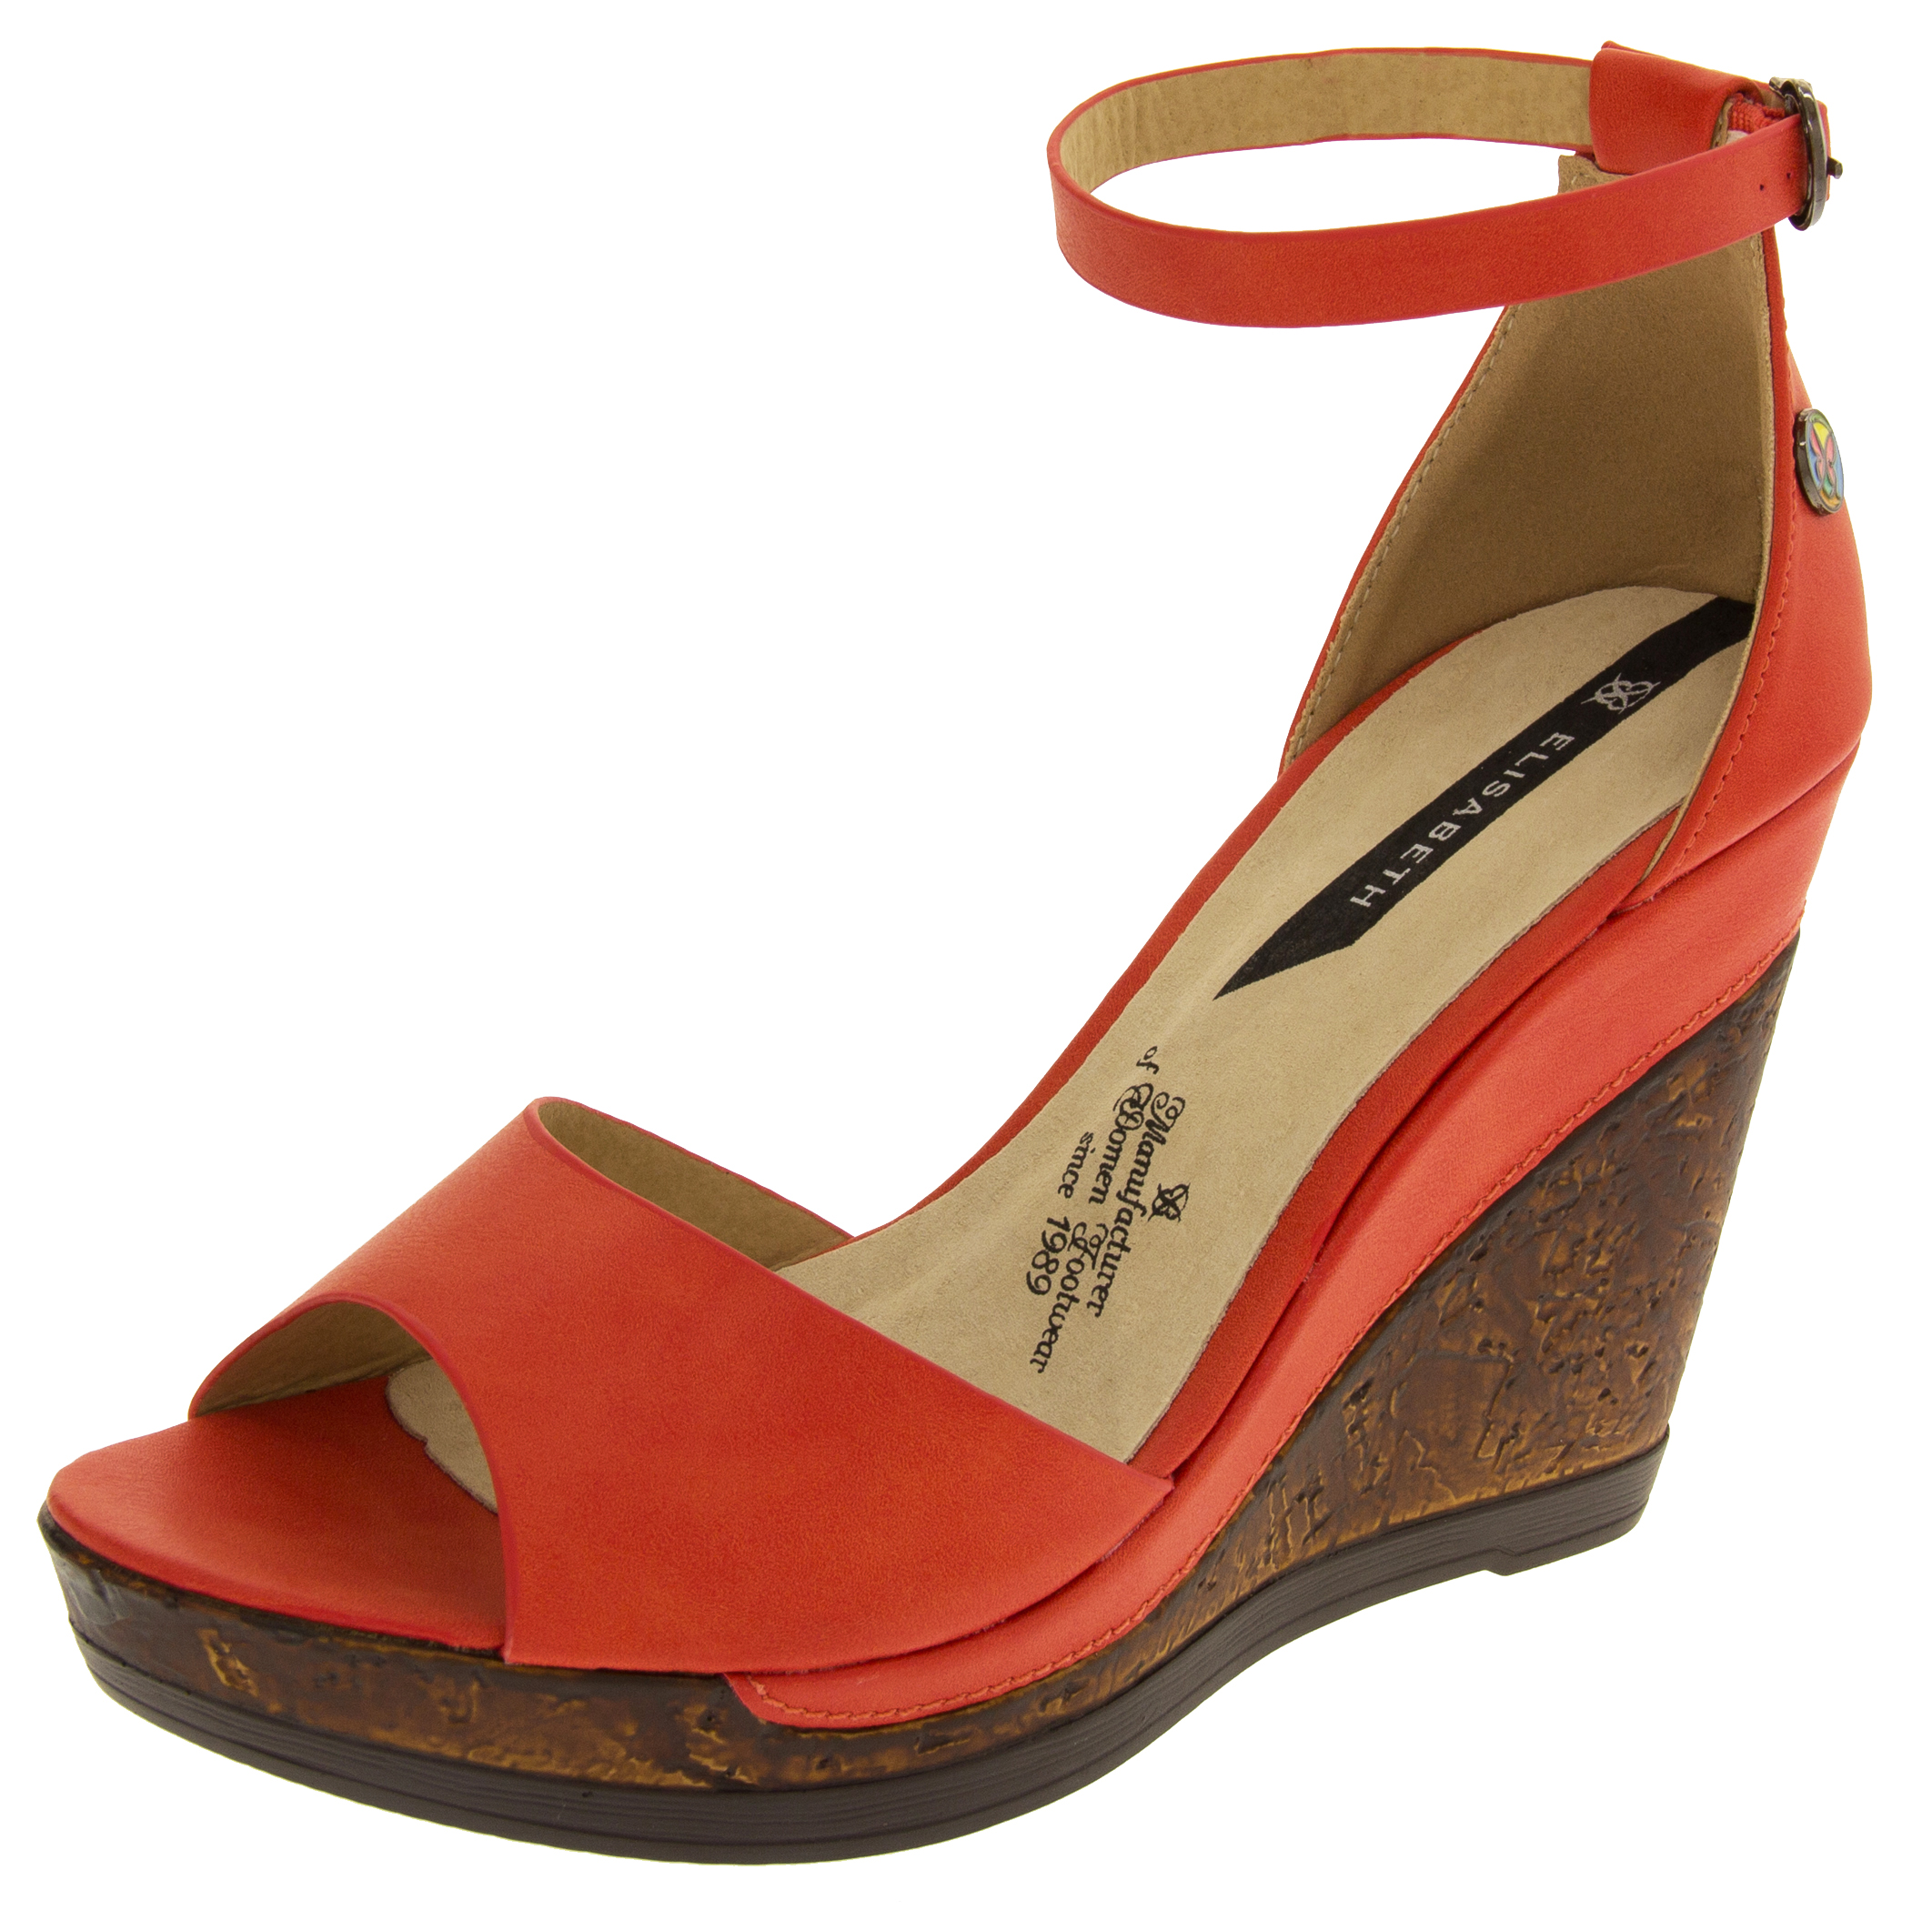 Find great deals on eBay for womens wedge shoes size 5. Shop with confidence.